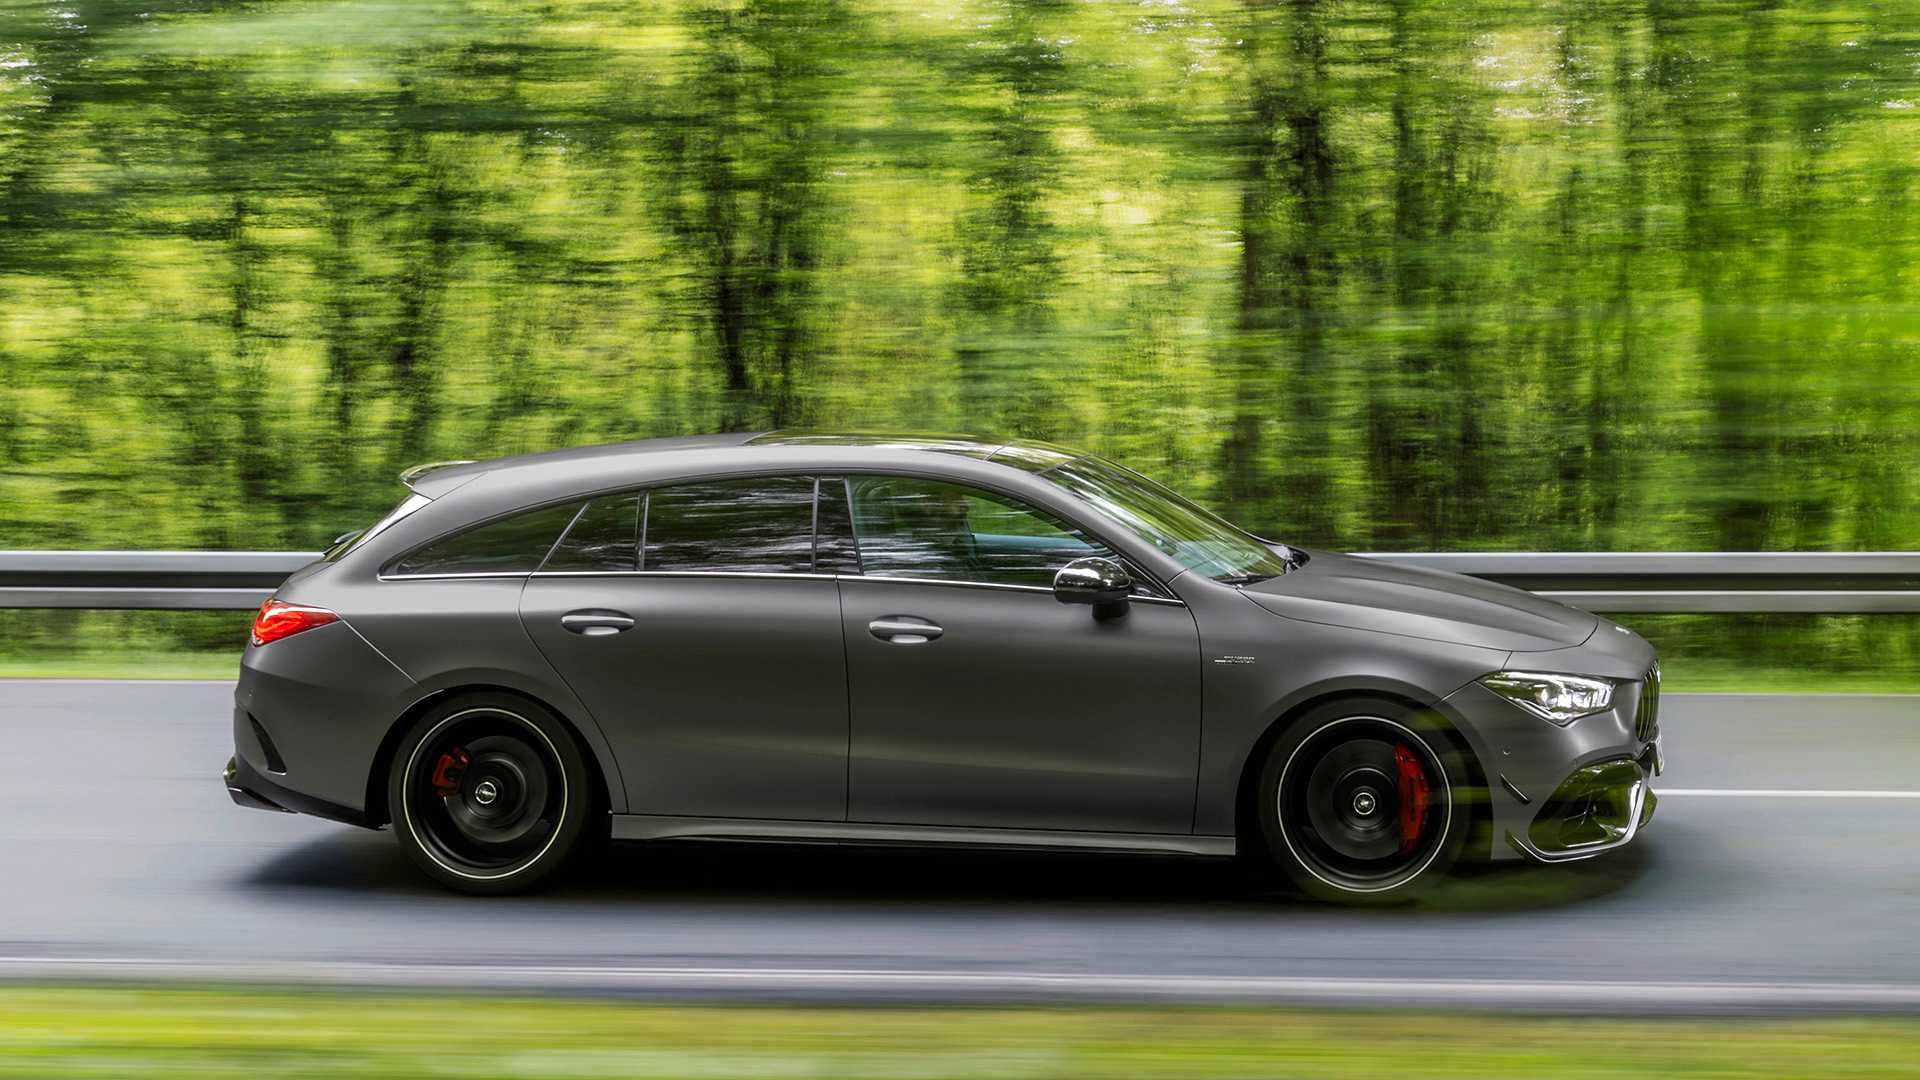 2020 Mercedes-AMG CLA 45 S 4MATIC+ Shooting Brake Side Wallpapers (7)